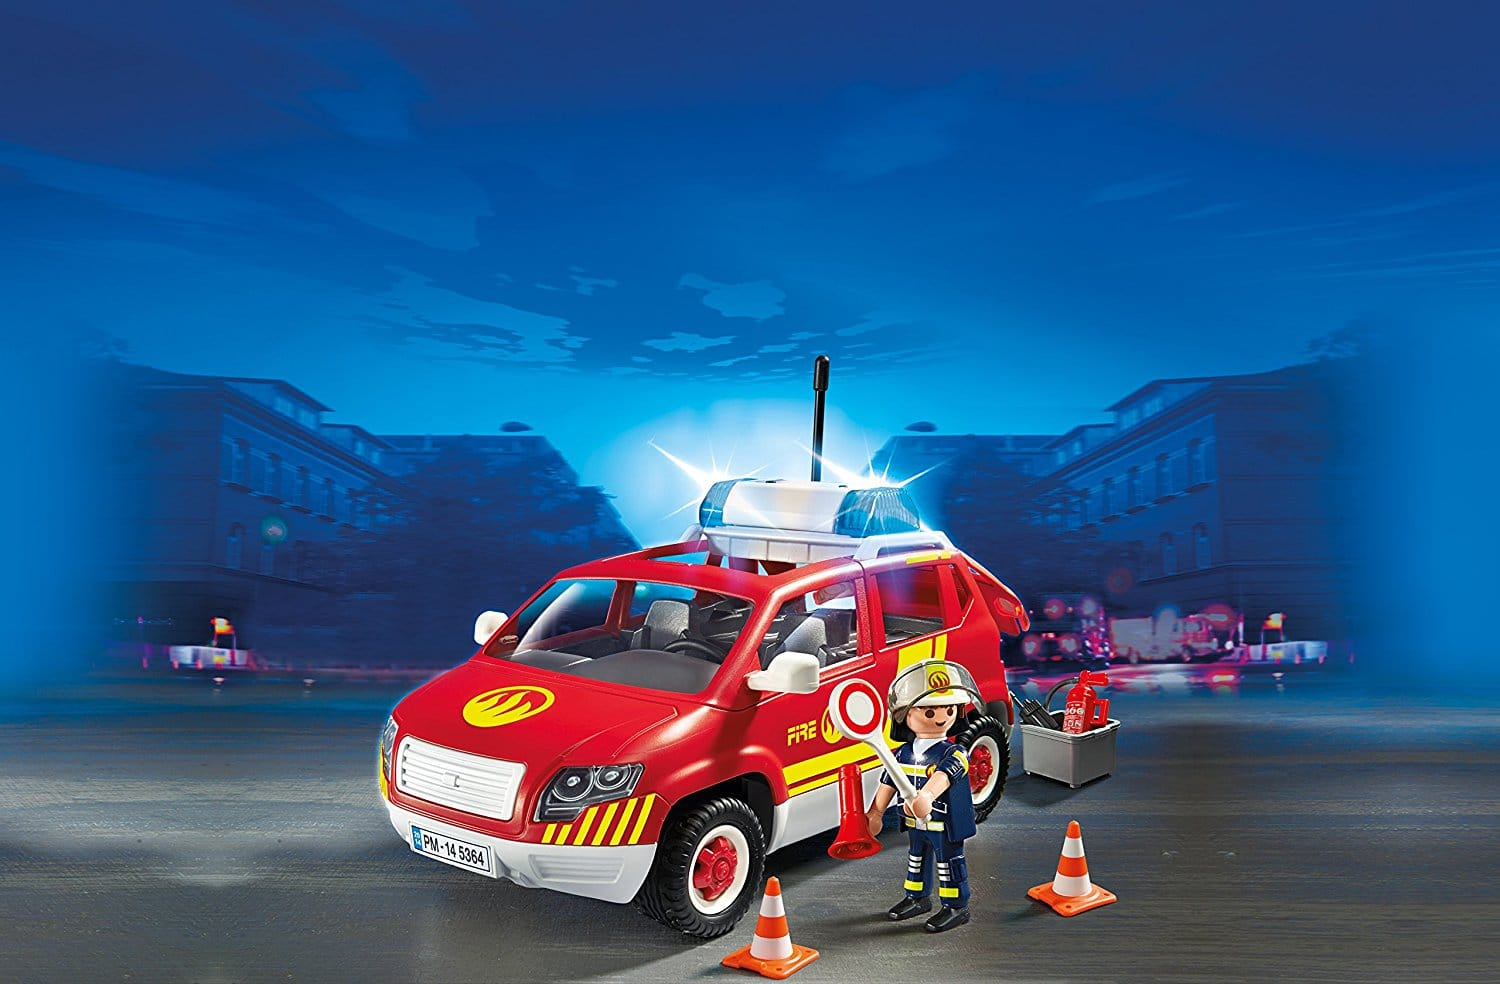 véhicule d'intervention des pompiers Playmobil 5364 City Action